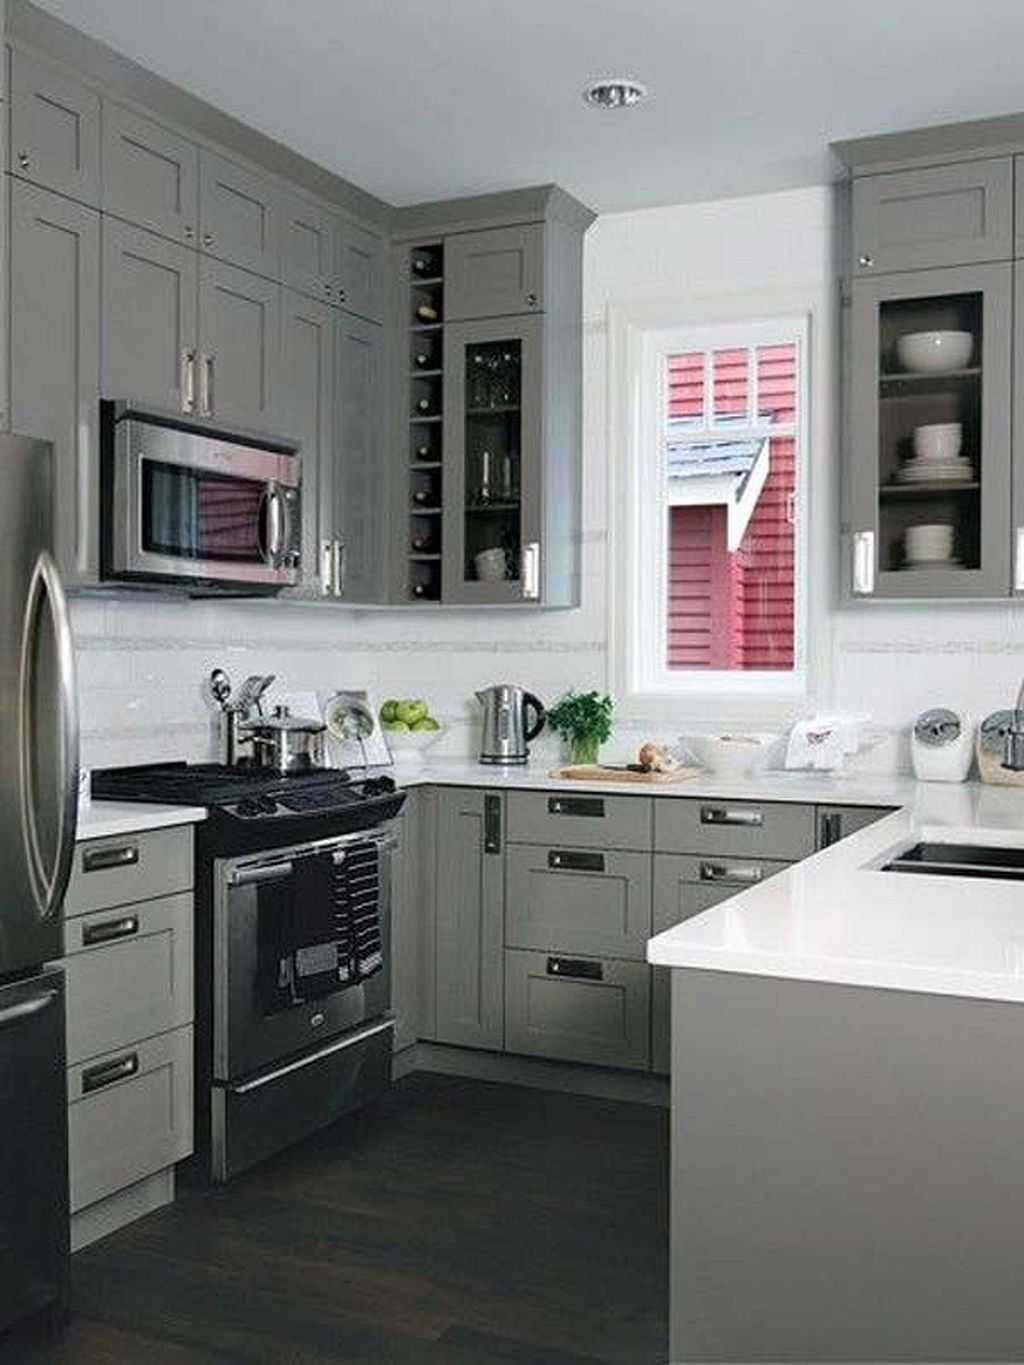 30 Awesome Ushaped Kitchen Designs For Small Spaces  Kitchen Extraordinary Kitchen Design Small Spaces Inspiration